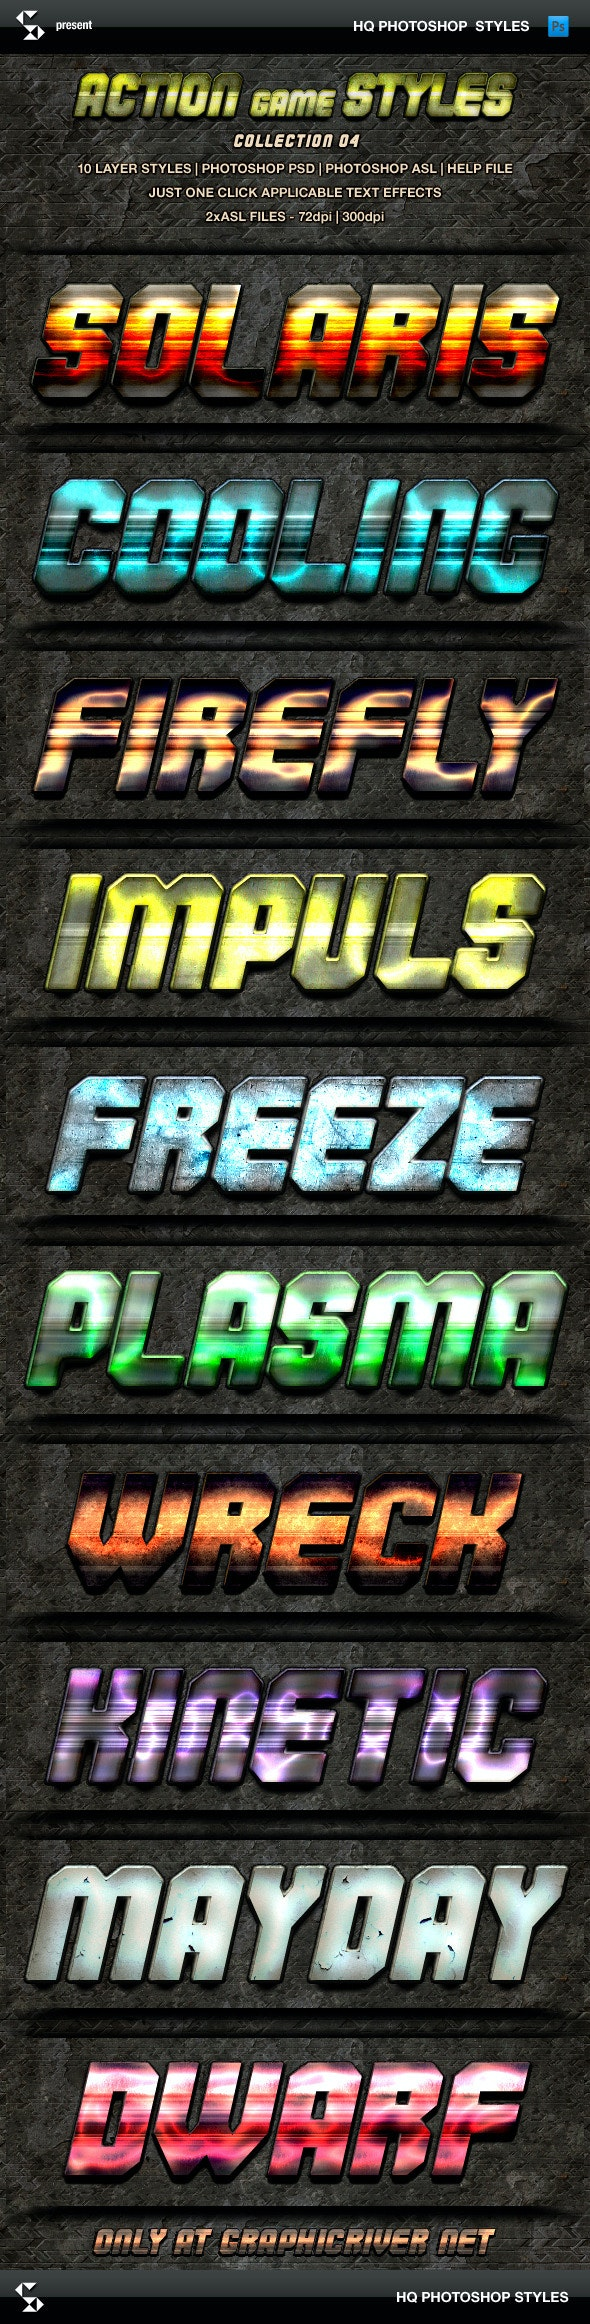 Action Game Styles - Collection 4 - Text Effects Styles